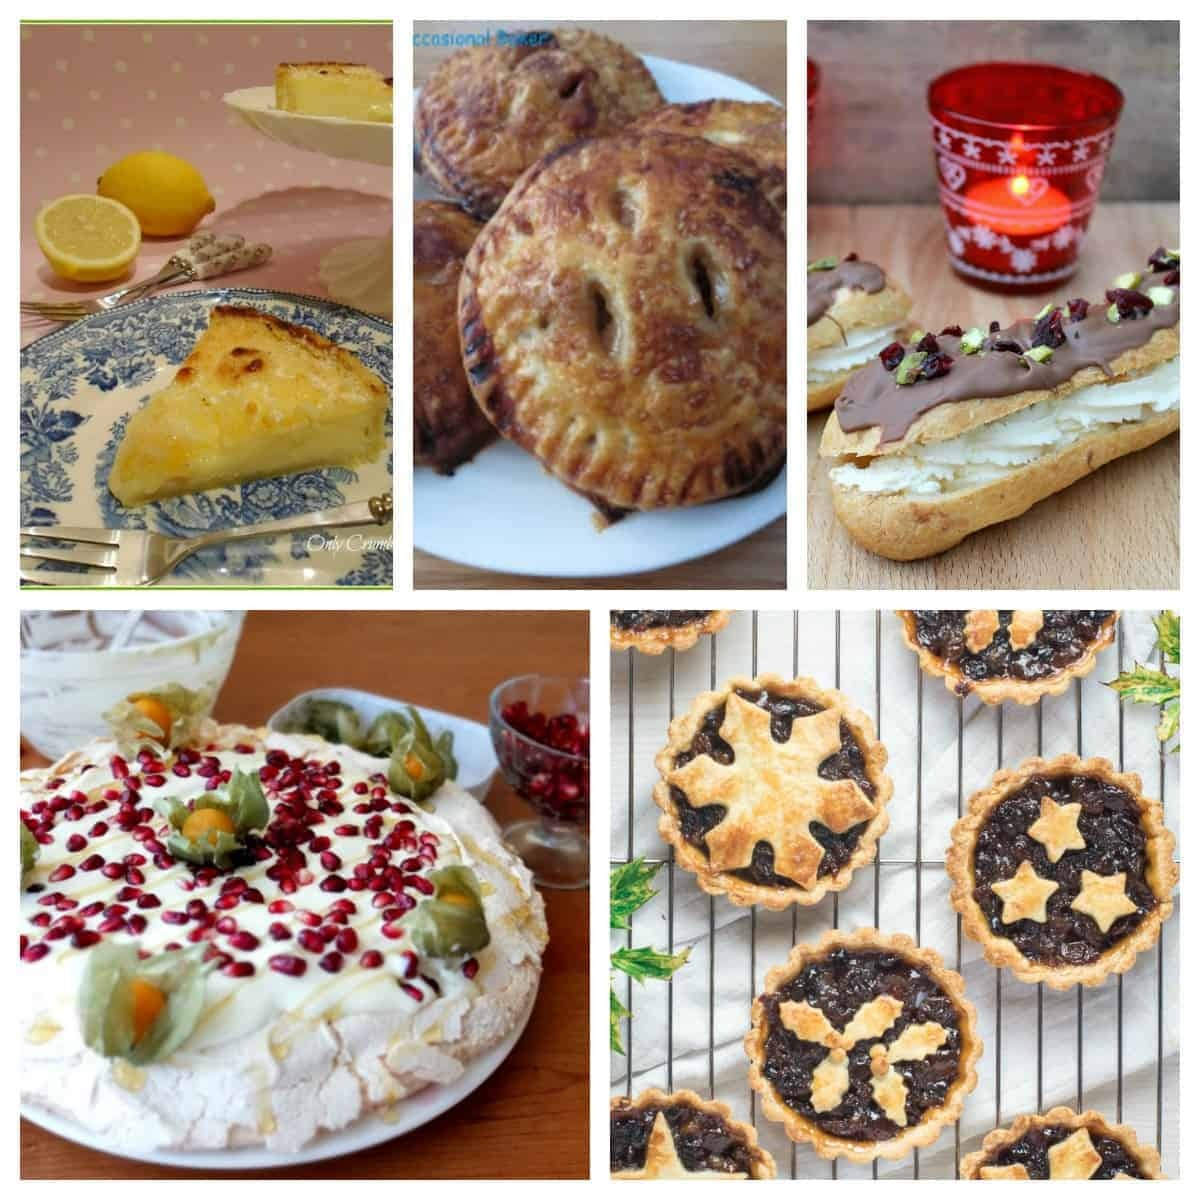 Perfecting Patisserie December 2015 + November Roundup